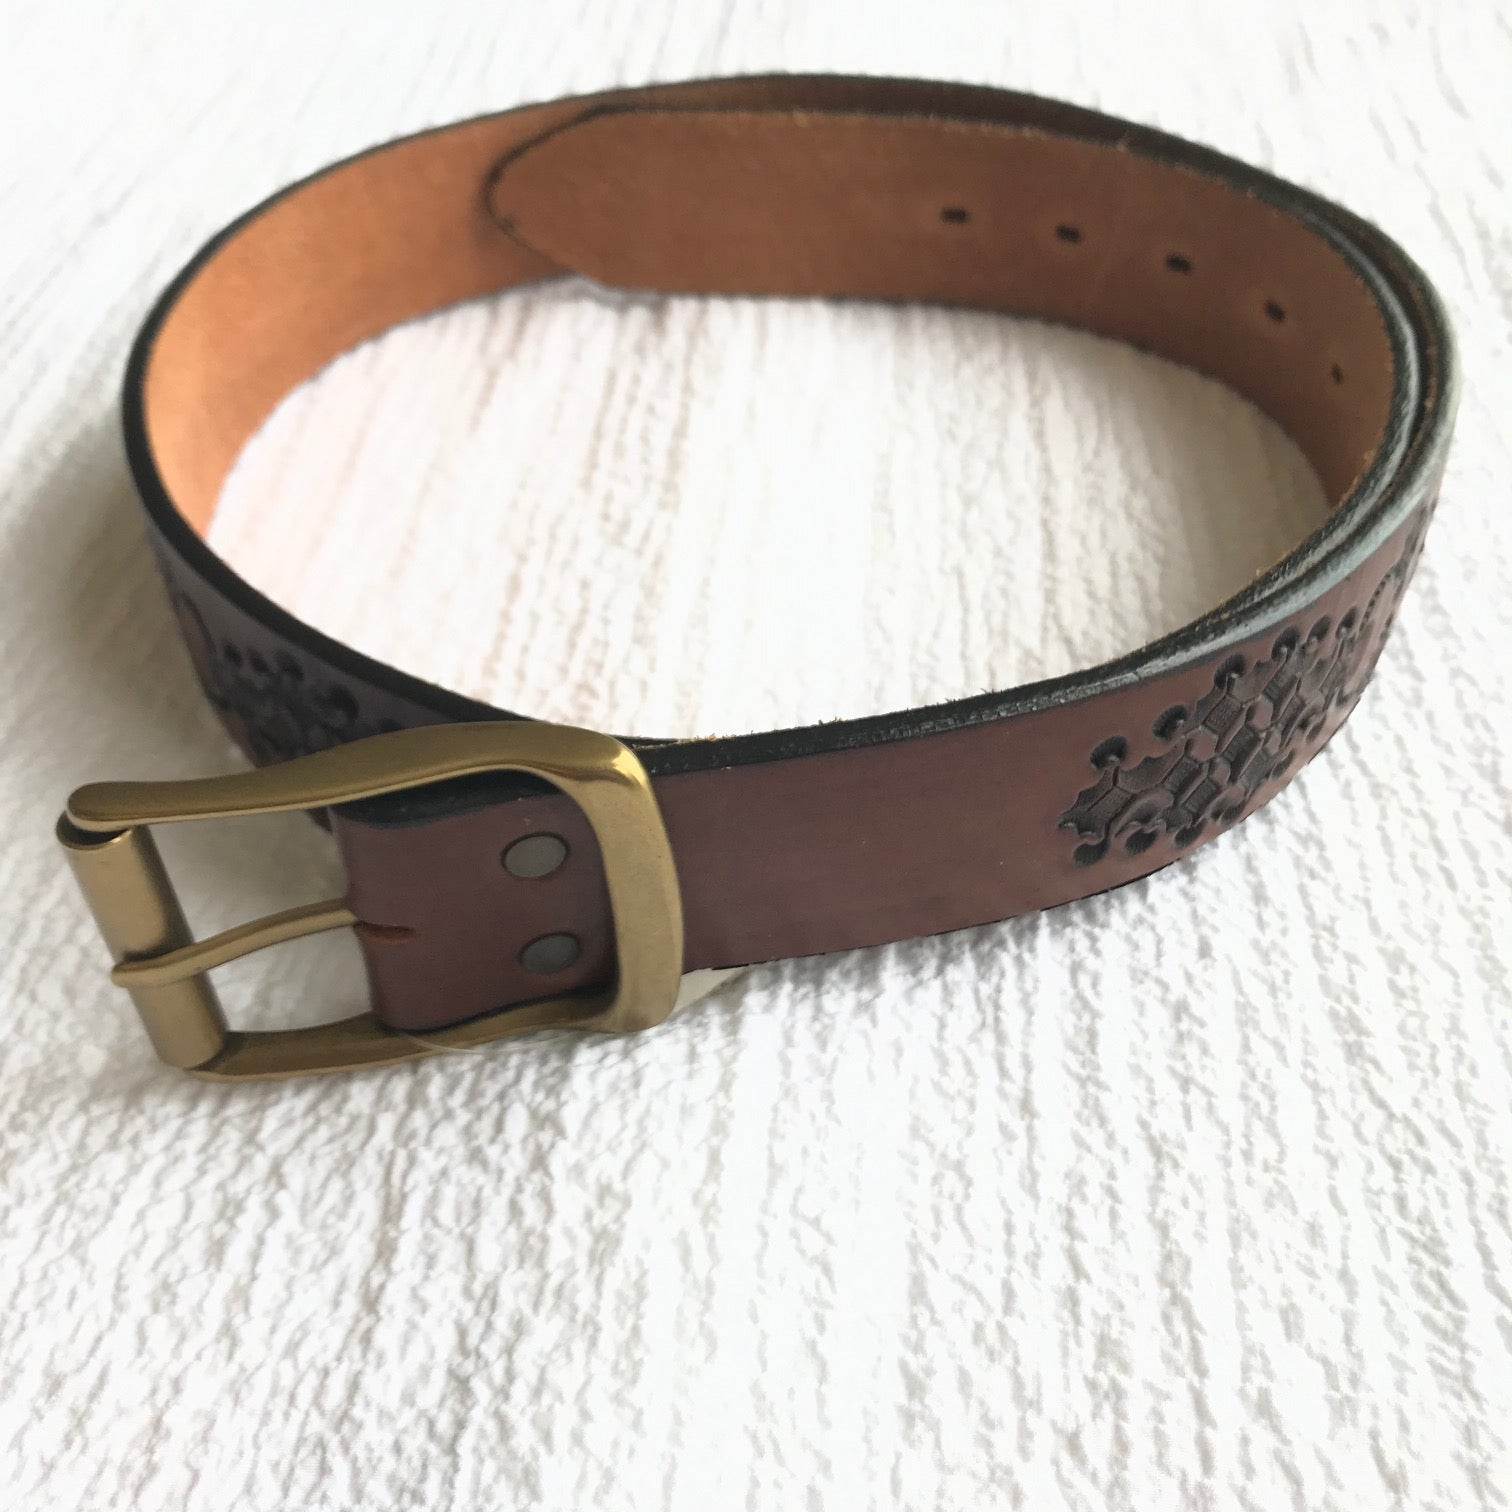 Brighton | Hand Tooled Honest by Brighton Patterned Belt | Brown - Size 38 only